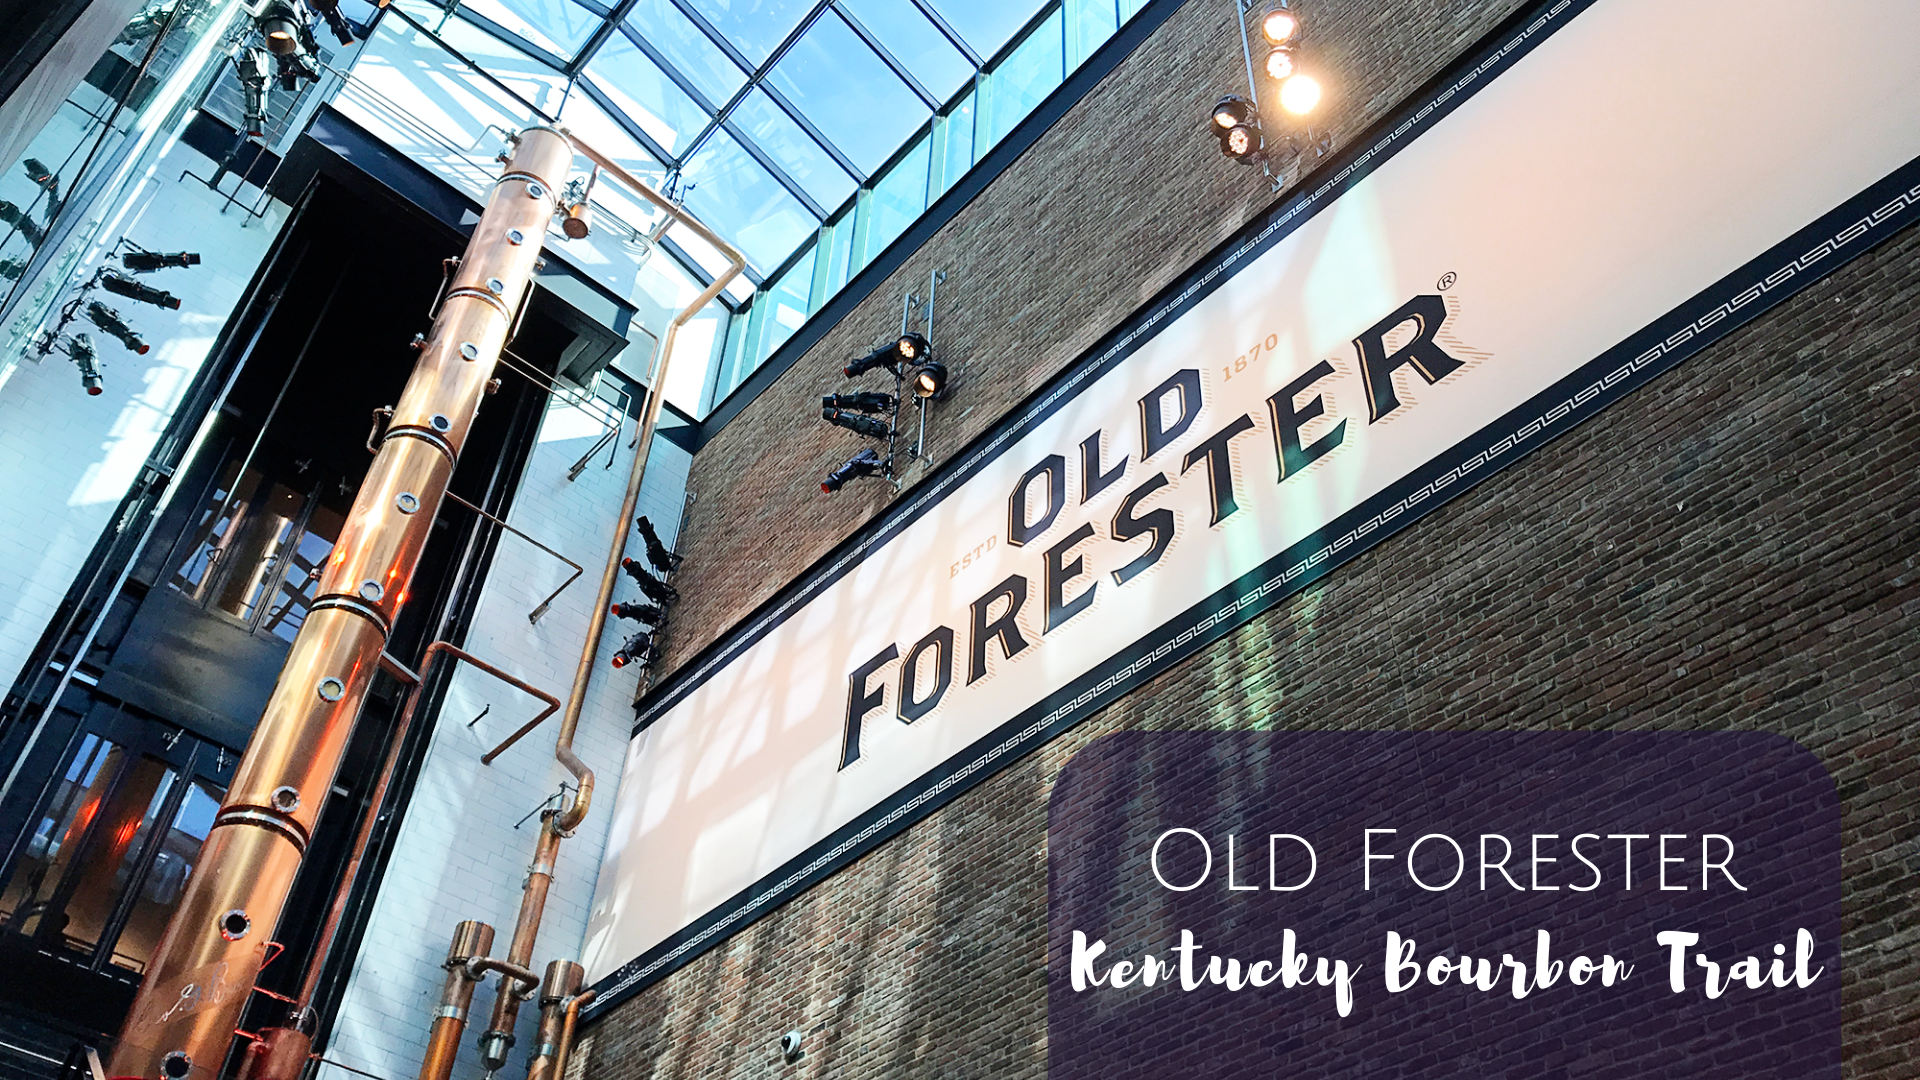 Old Forester Distillery in Louisville, Kentucky - George's Bar Cocktail Class